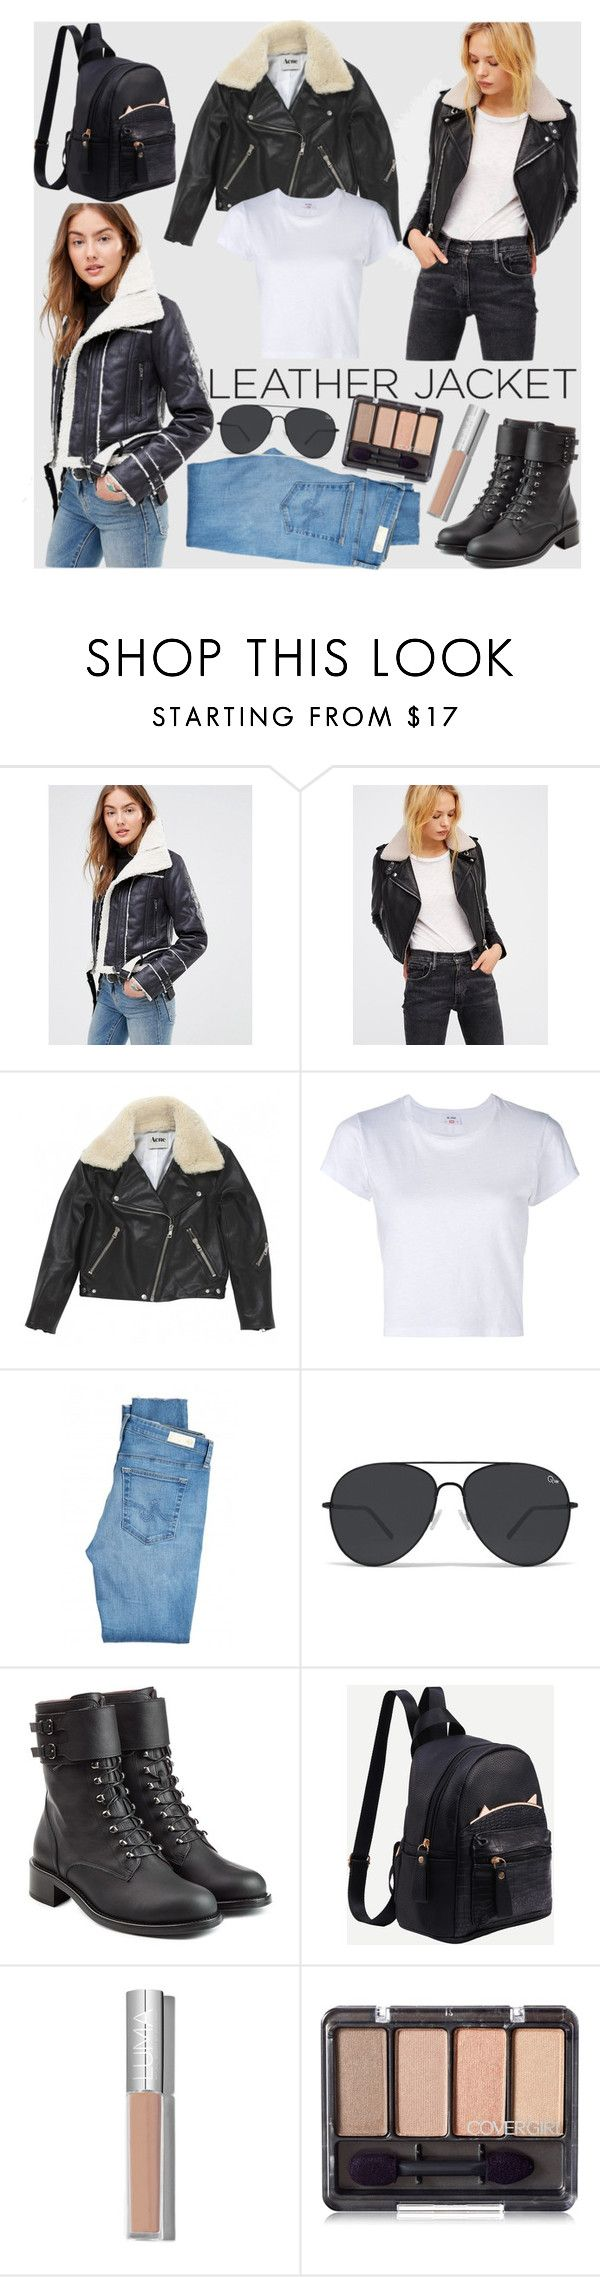 """""""Aviator jacket"""" by hereisalessia ❤ liked on Polyvore featuring Brave Soul, Free People, Acne Studios, RE/DONE, AG Adriano Goldschmied and Philosophy di Lorenzo Serafini"""